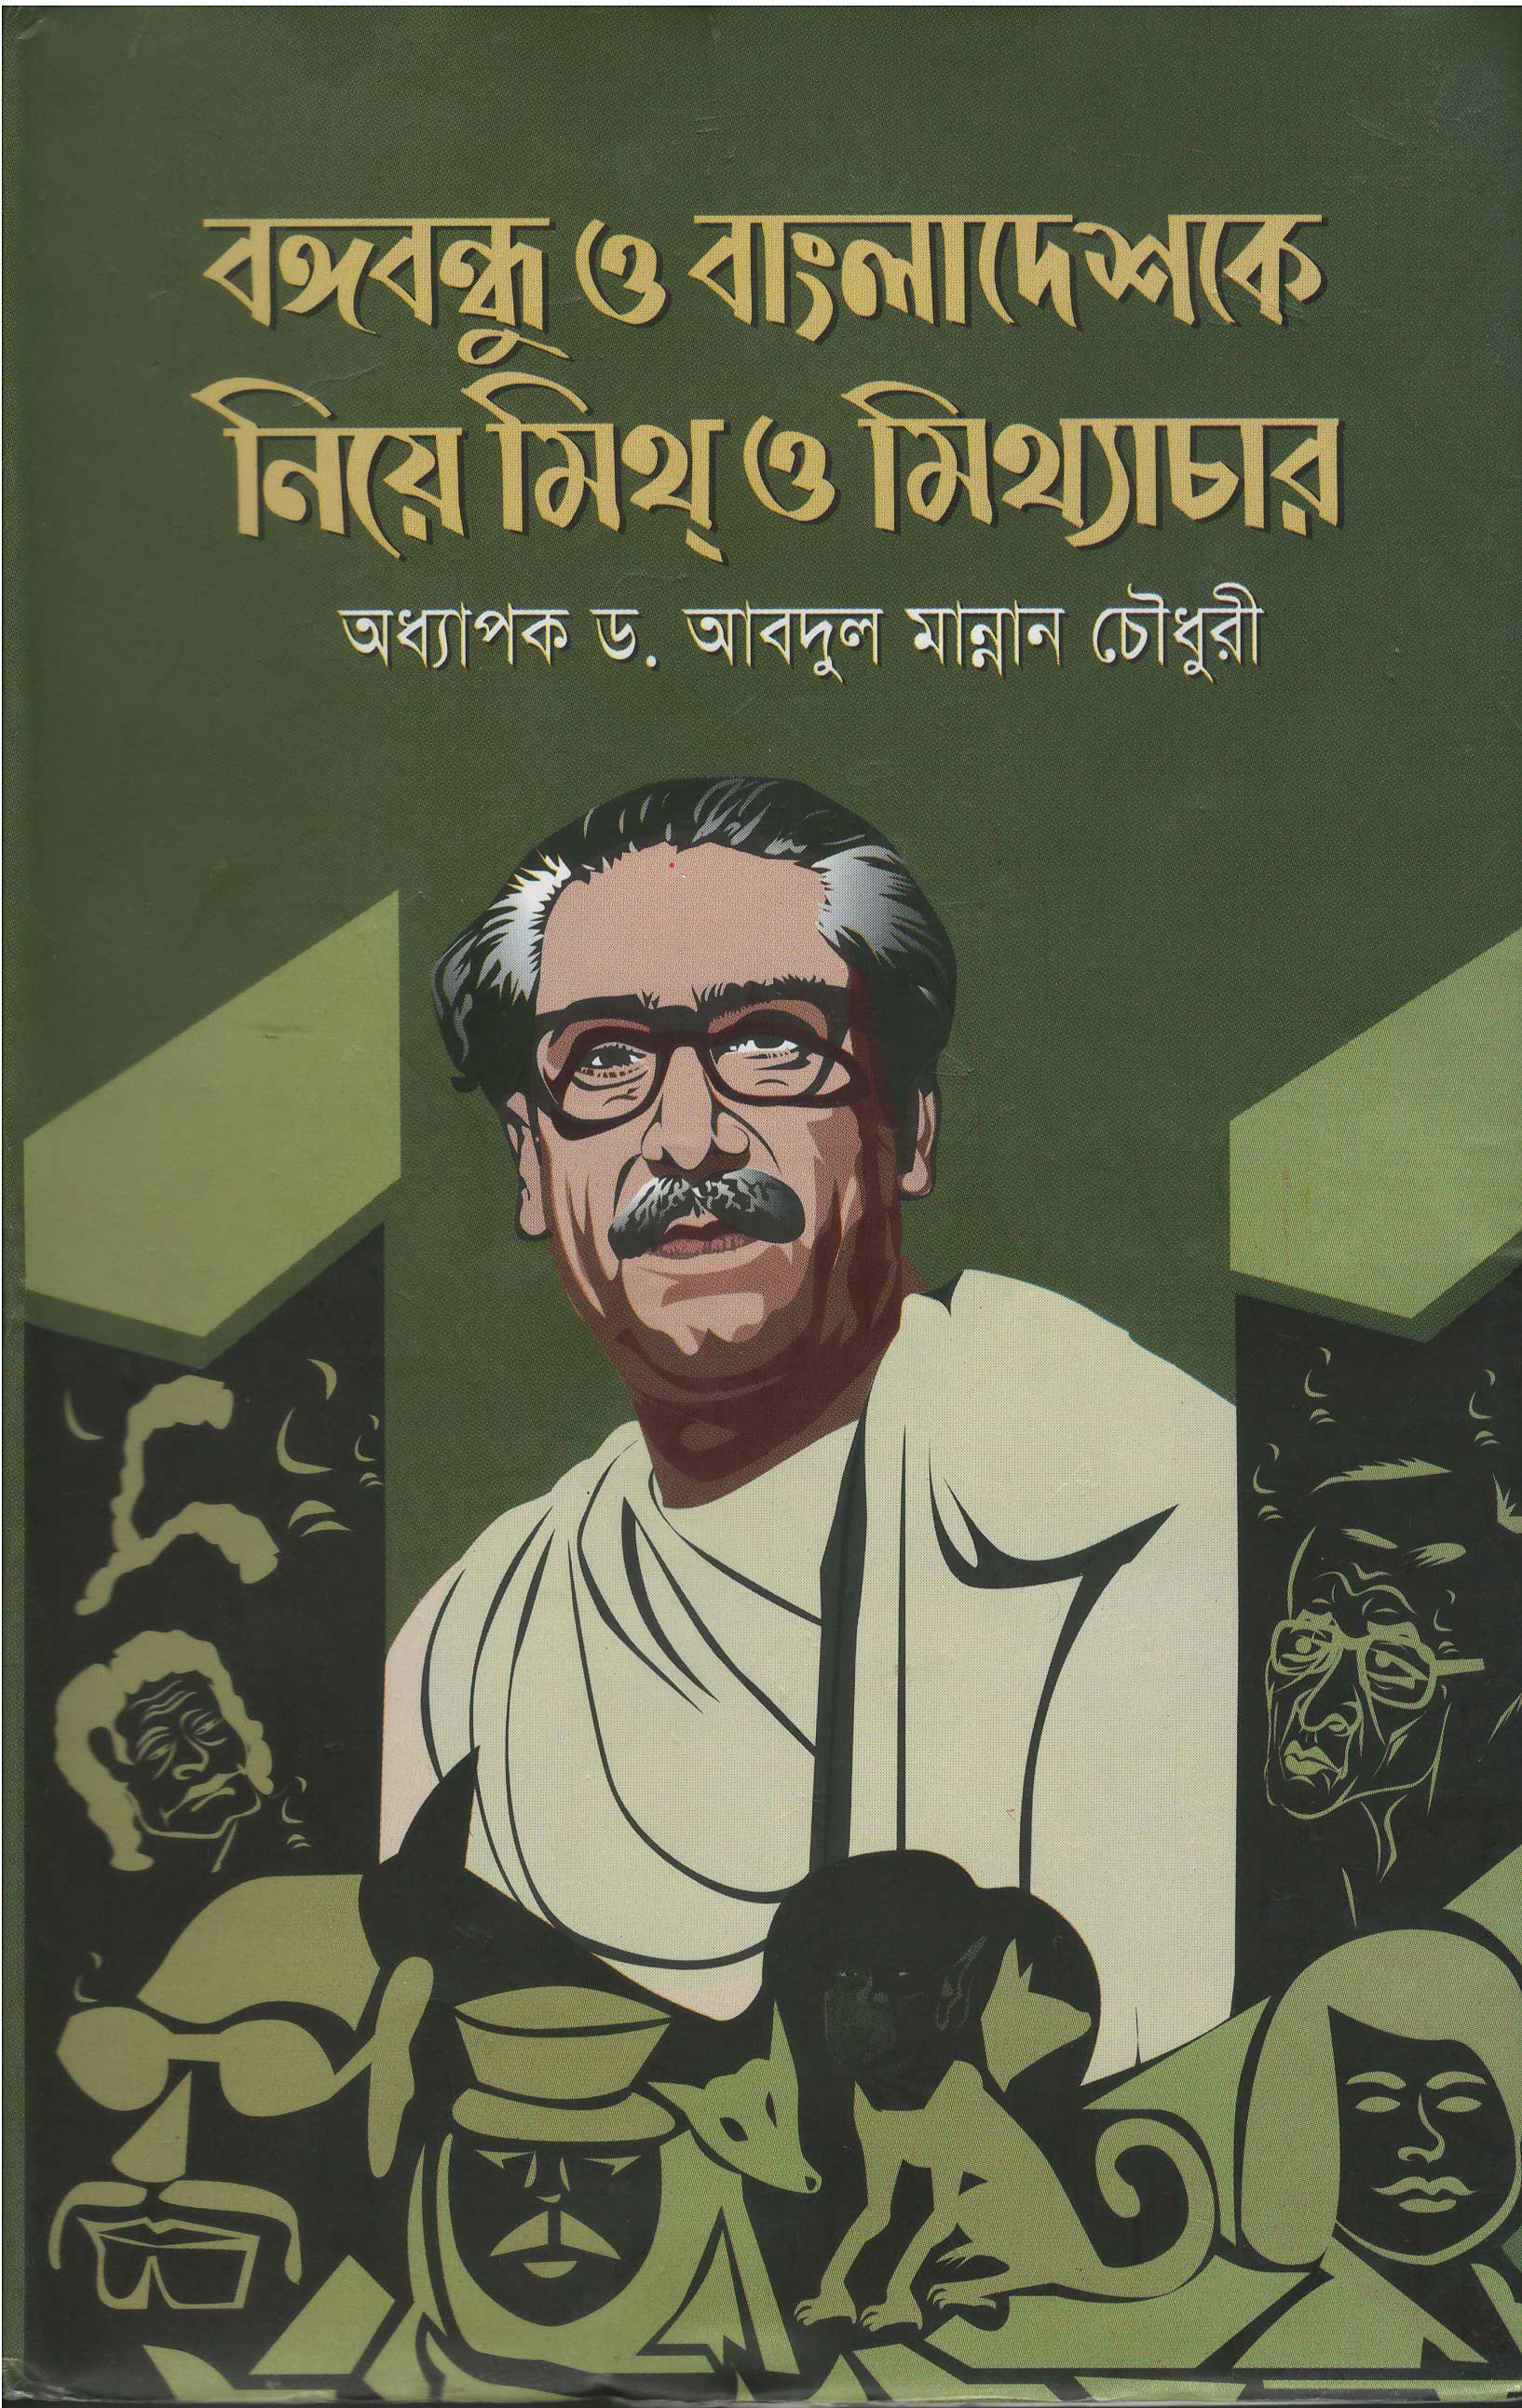 World University Vice Chancellor Book Bangabandhu o Bangladesh Niye Mith o Mithachar